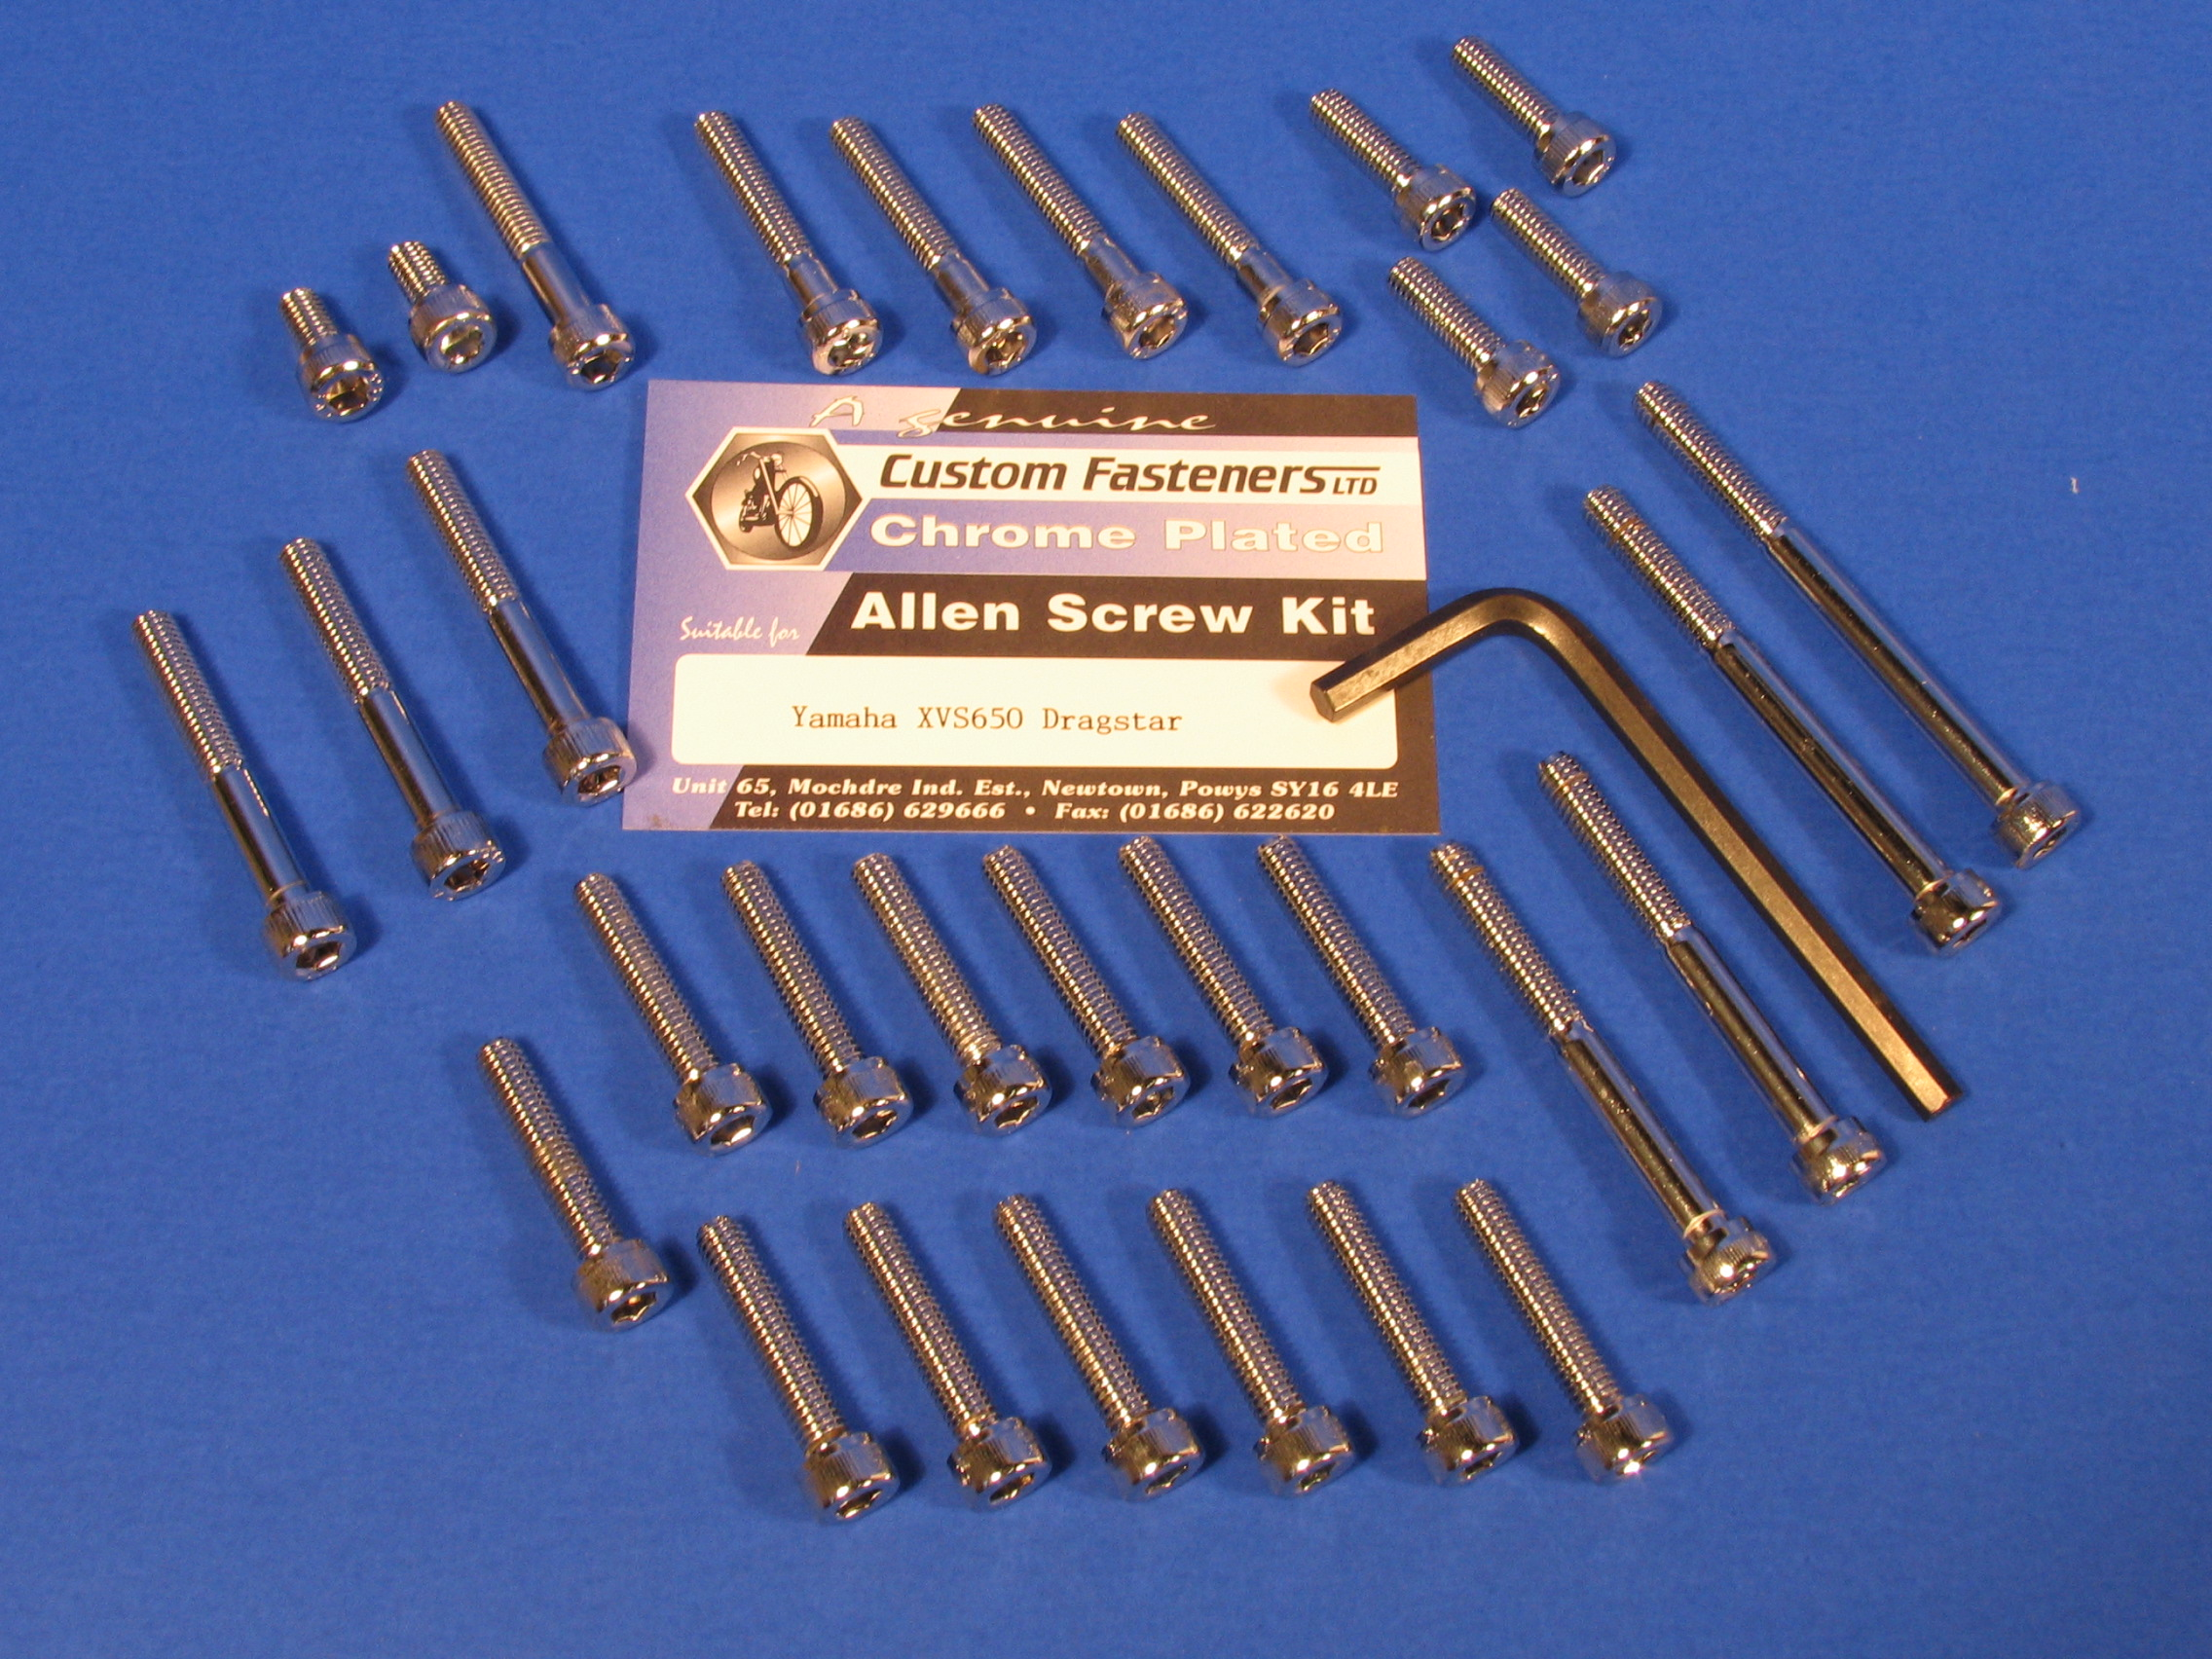 Harley Davidson Allen Screw Kits